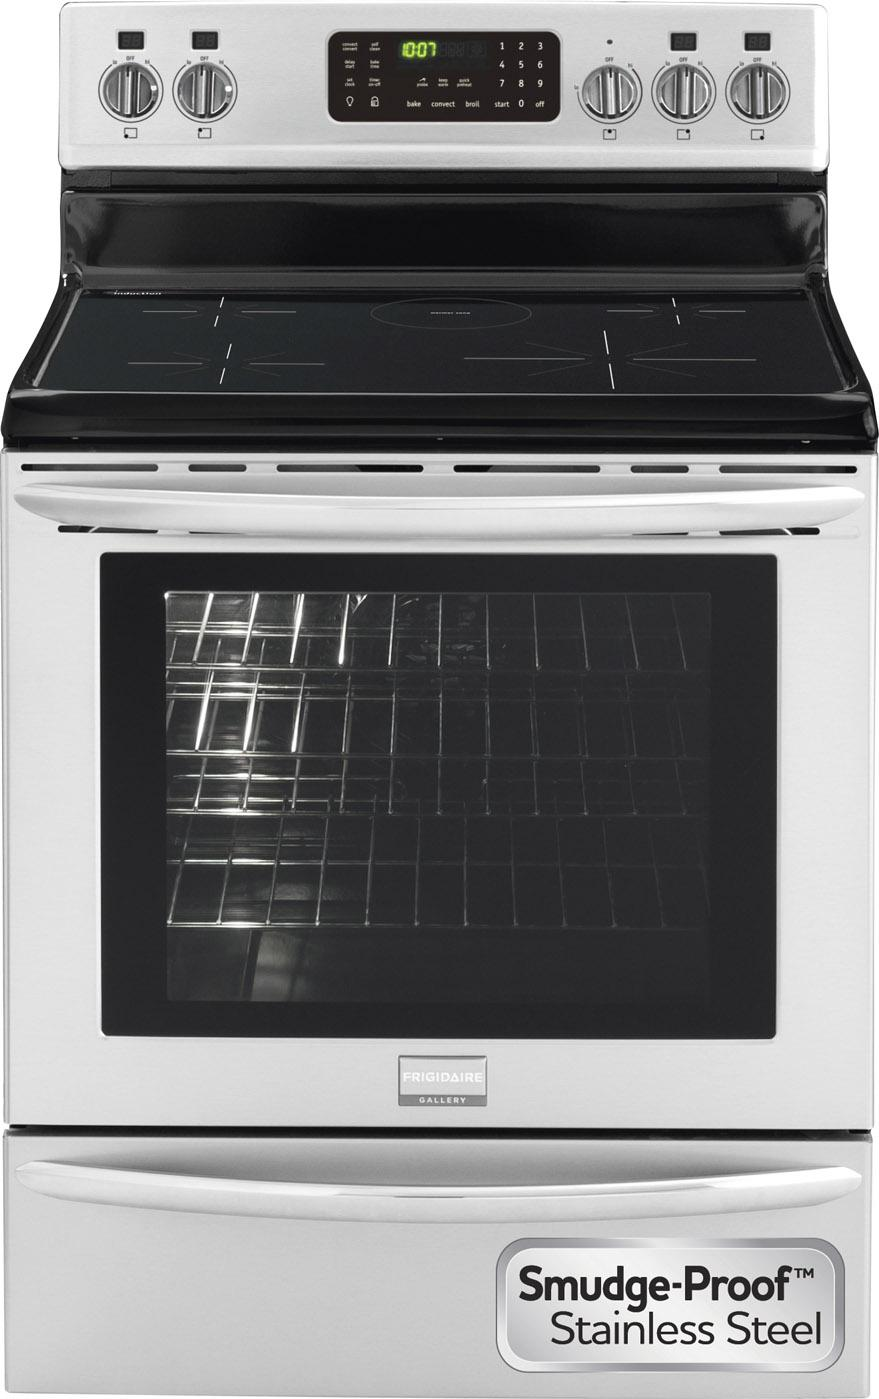 "Frigidaire Frigidaire Gallery Electric Ranges 30"" Freestanding Induction Range - Item Number: FGIF3061NF"